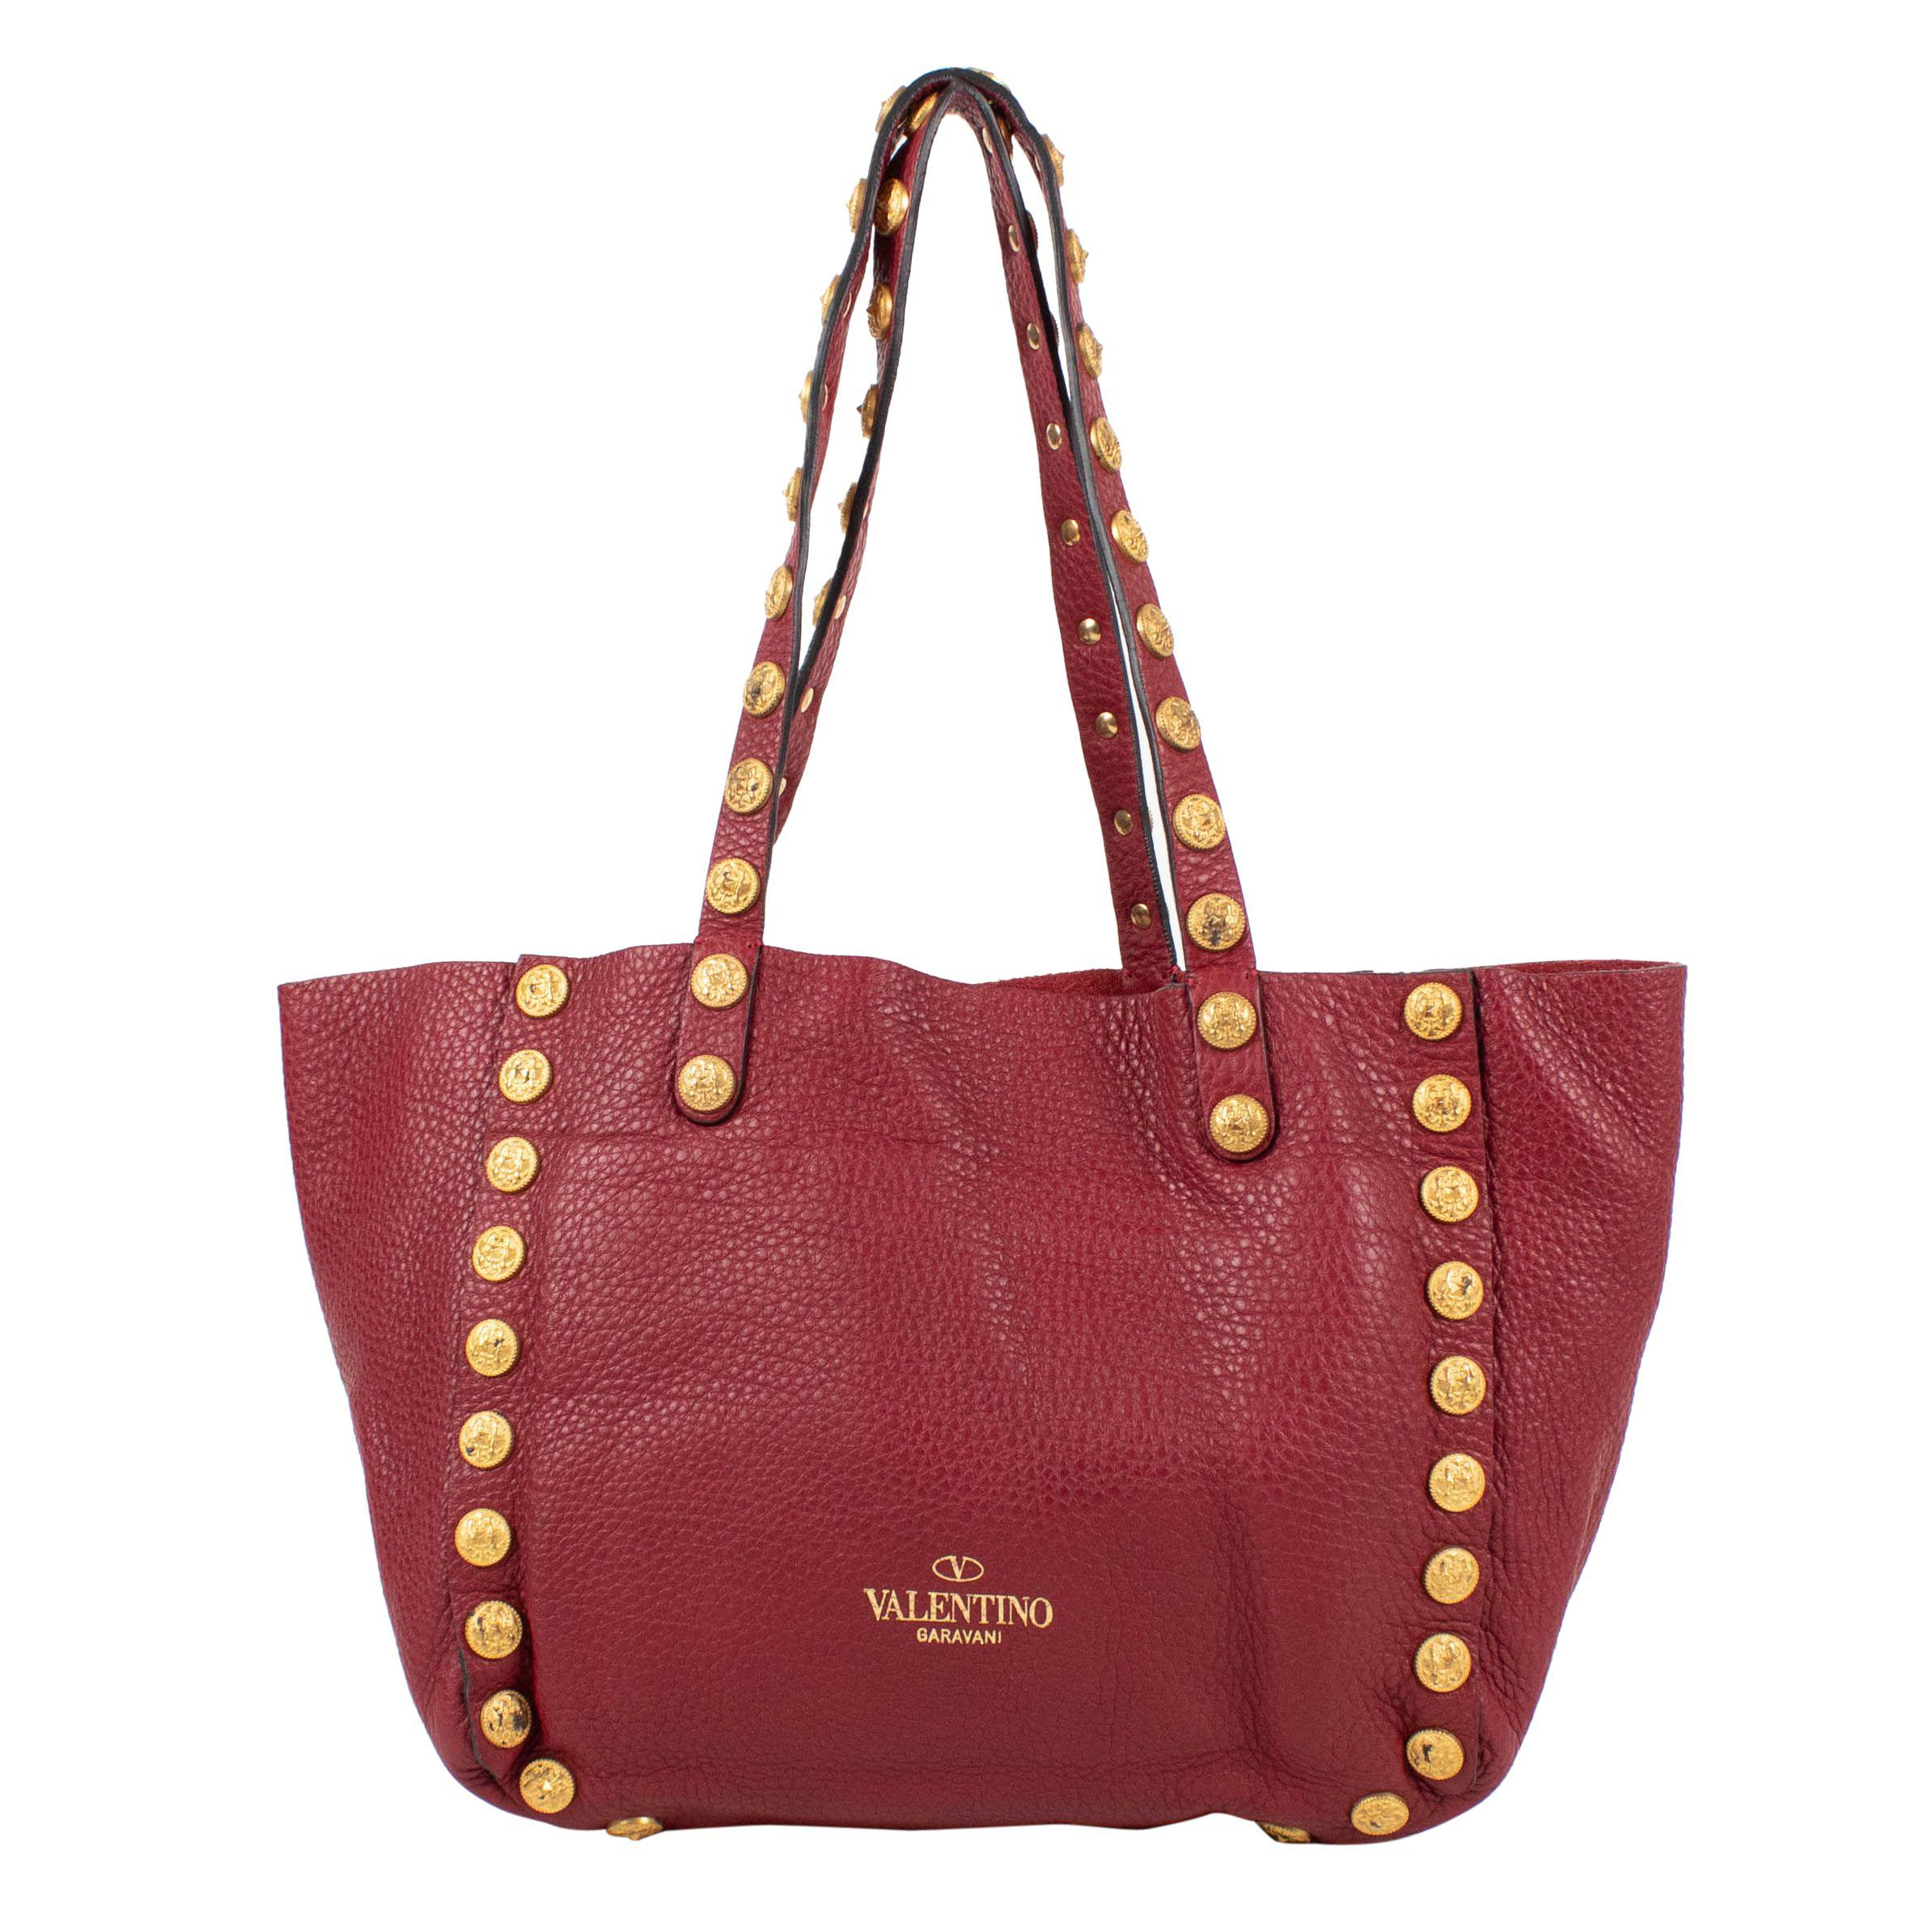 39c5000ca23e Lyst - Valentino Red Leather C-rockee Studded Hobo Tote Bag in Red